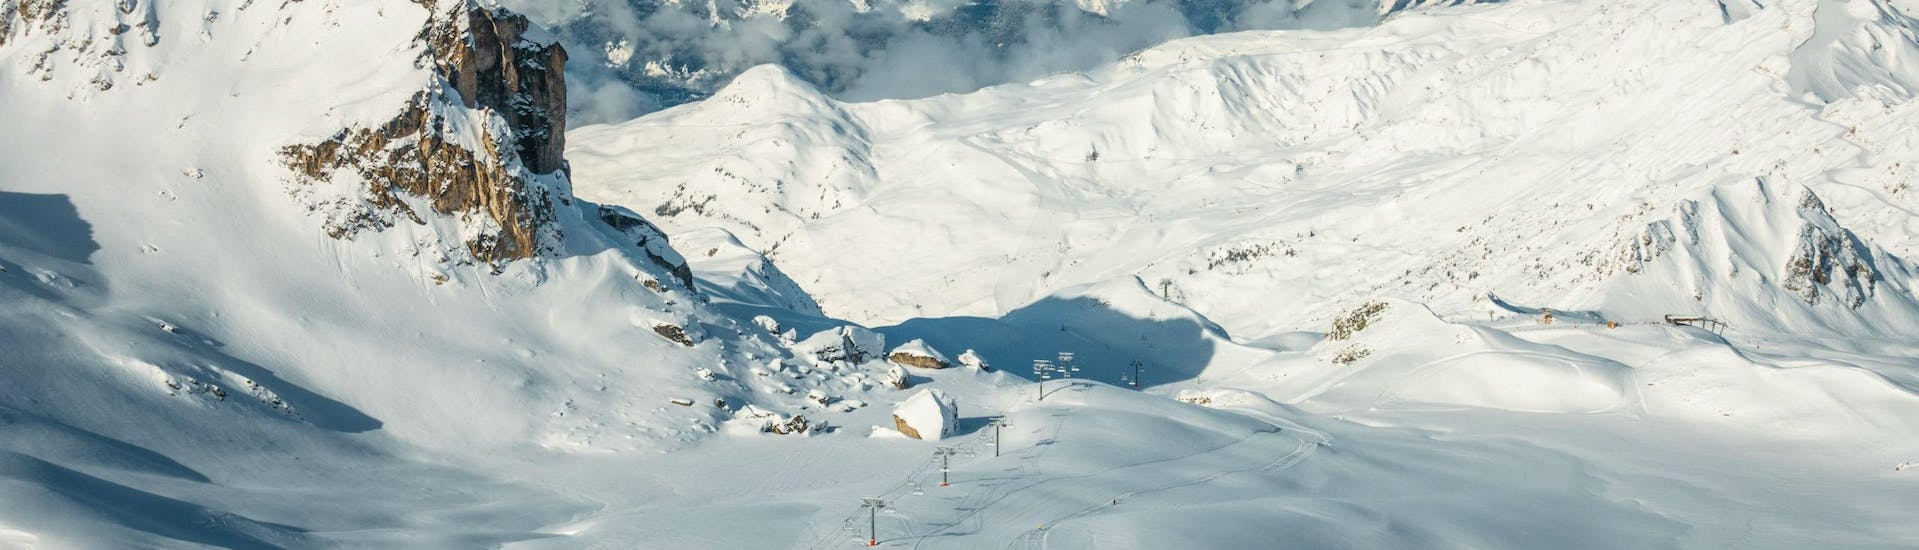 A panoramic view of the ski slopes of La Plagne, a popular ski resort in the French Alps, where local ski schools ski lessons for everyone who wants to learn to ski.